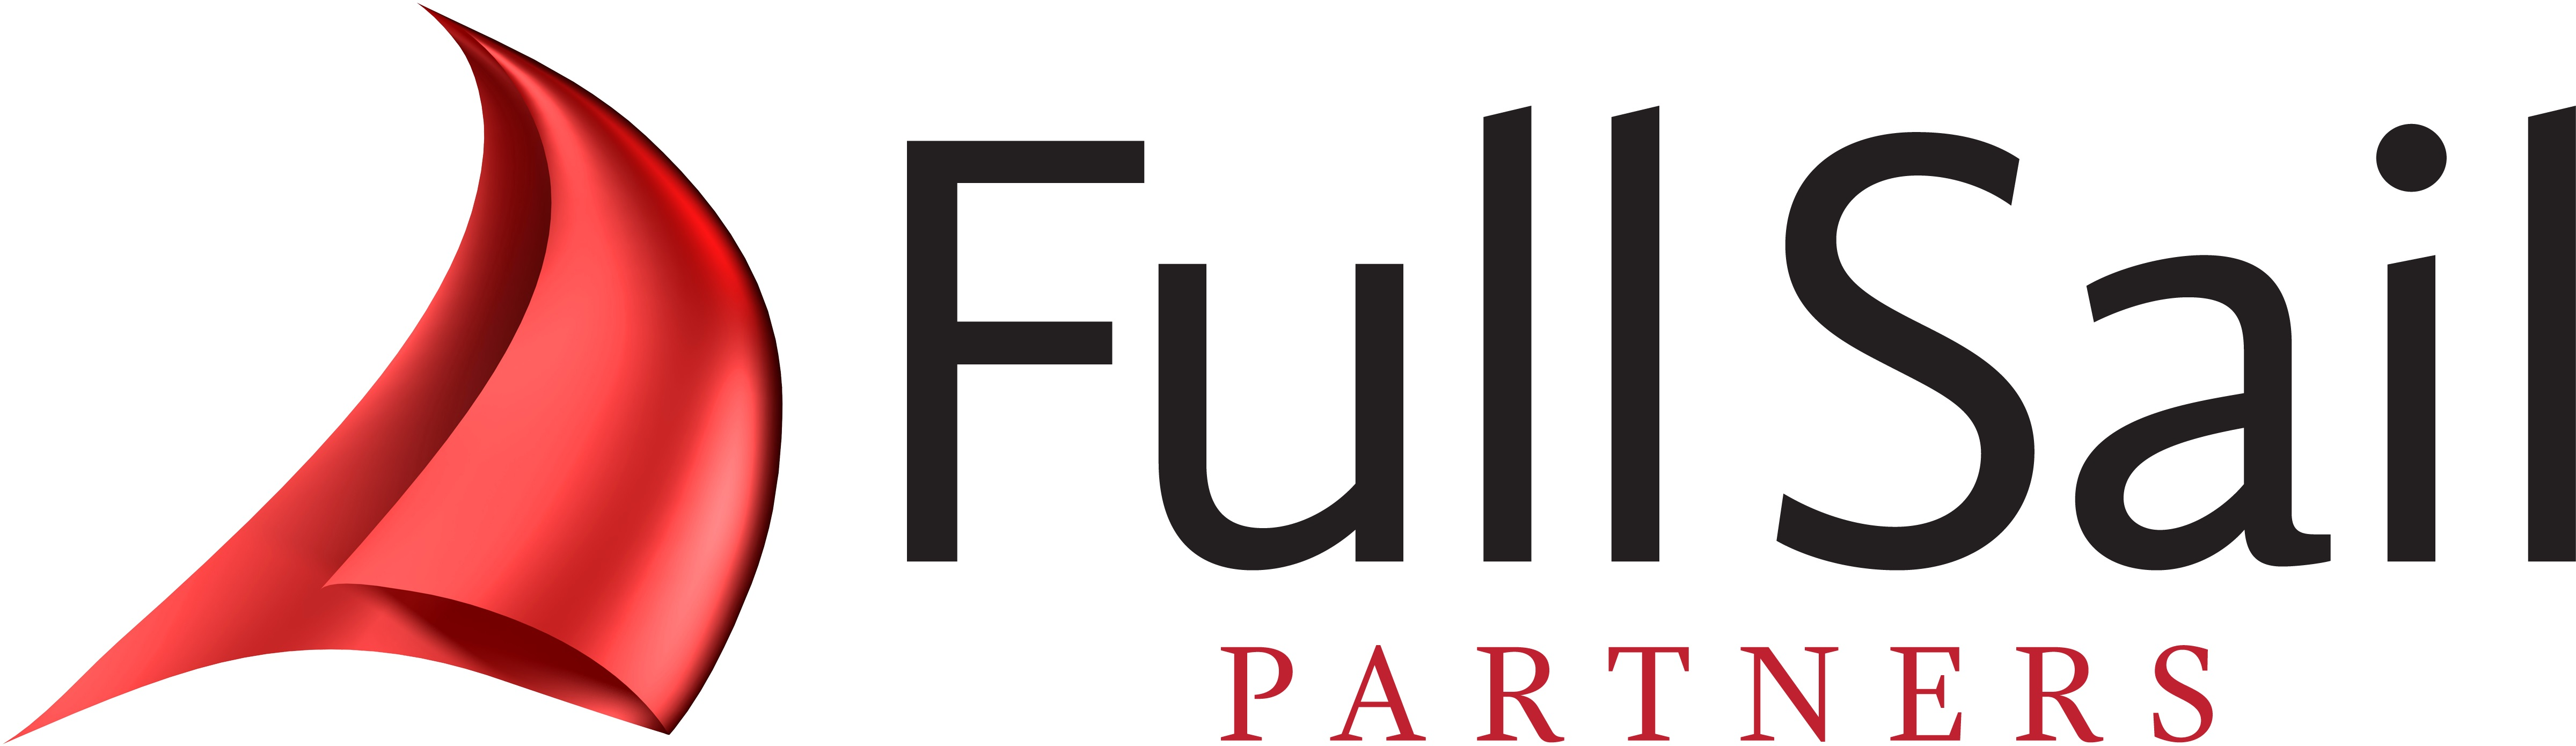 Full Sail Partners fullSail-3d-300dpi